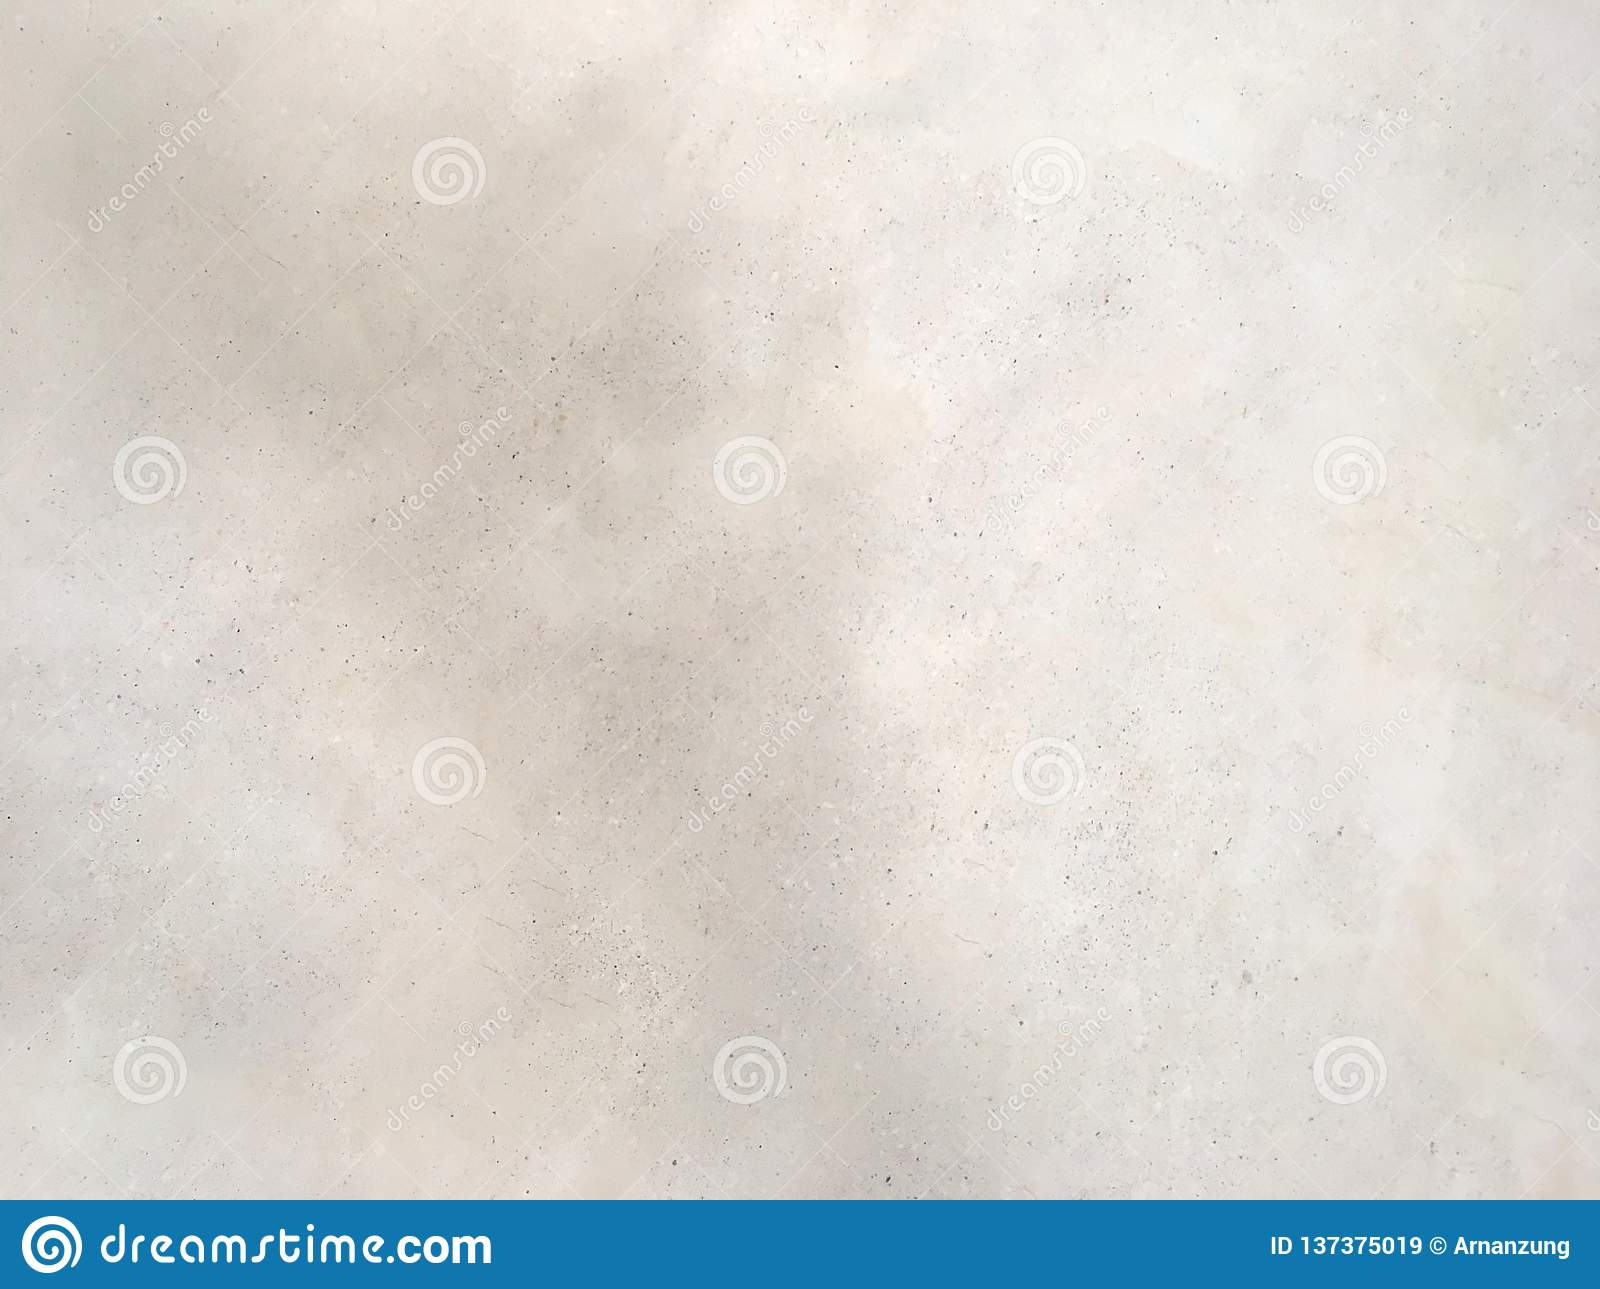 Light gray concrete wall texture gradient color shade. Rough pattern with stain spots background.